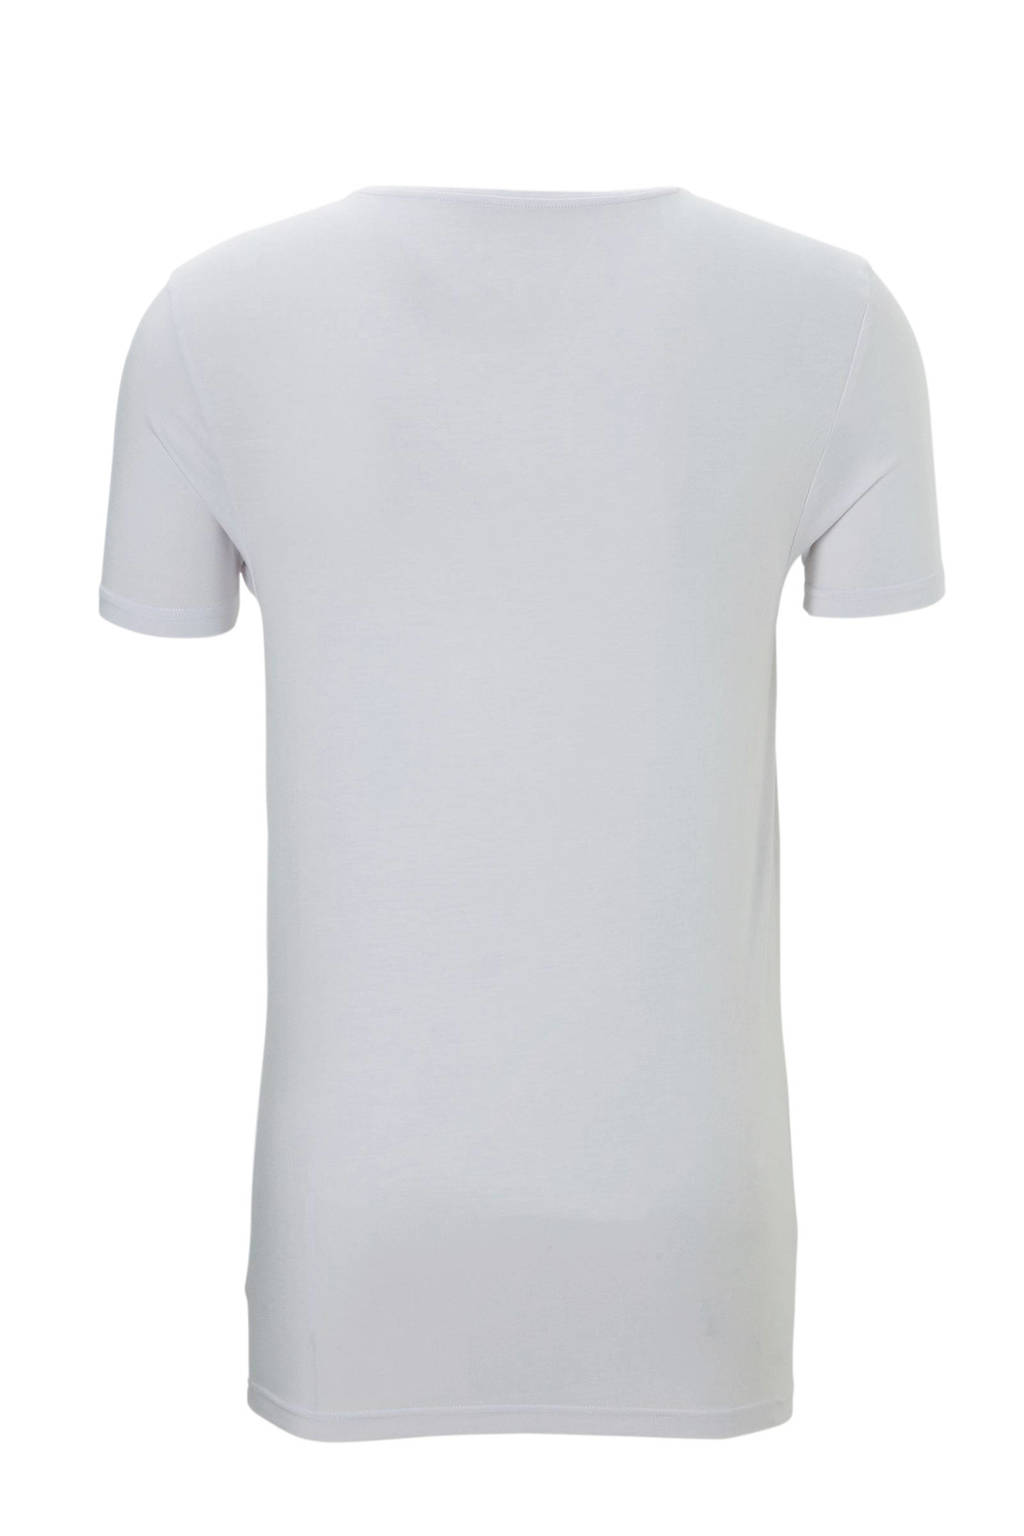 ten Cate bamboe T-shirt wit, Wit